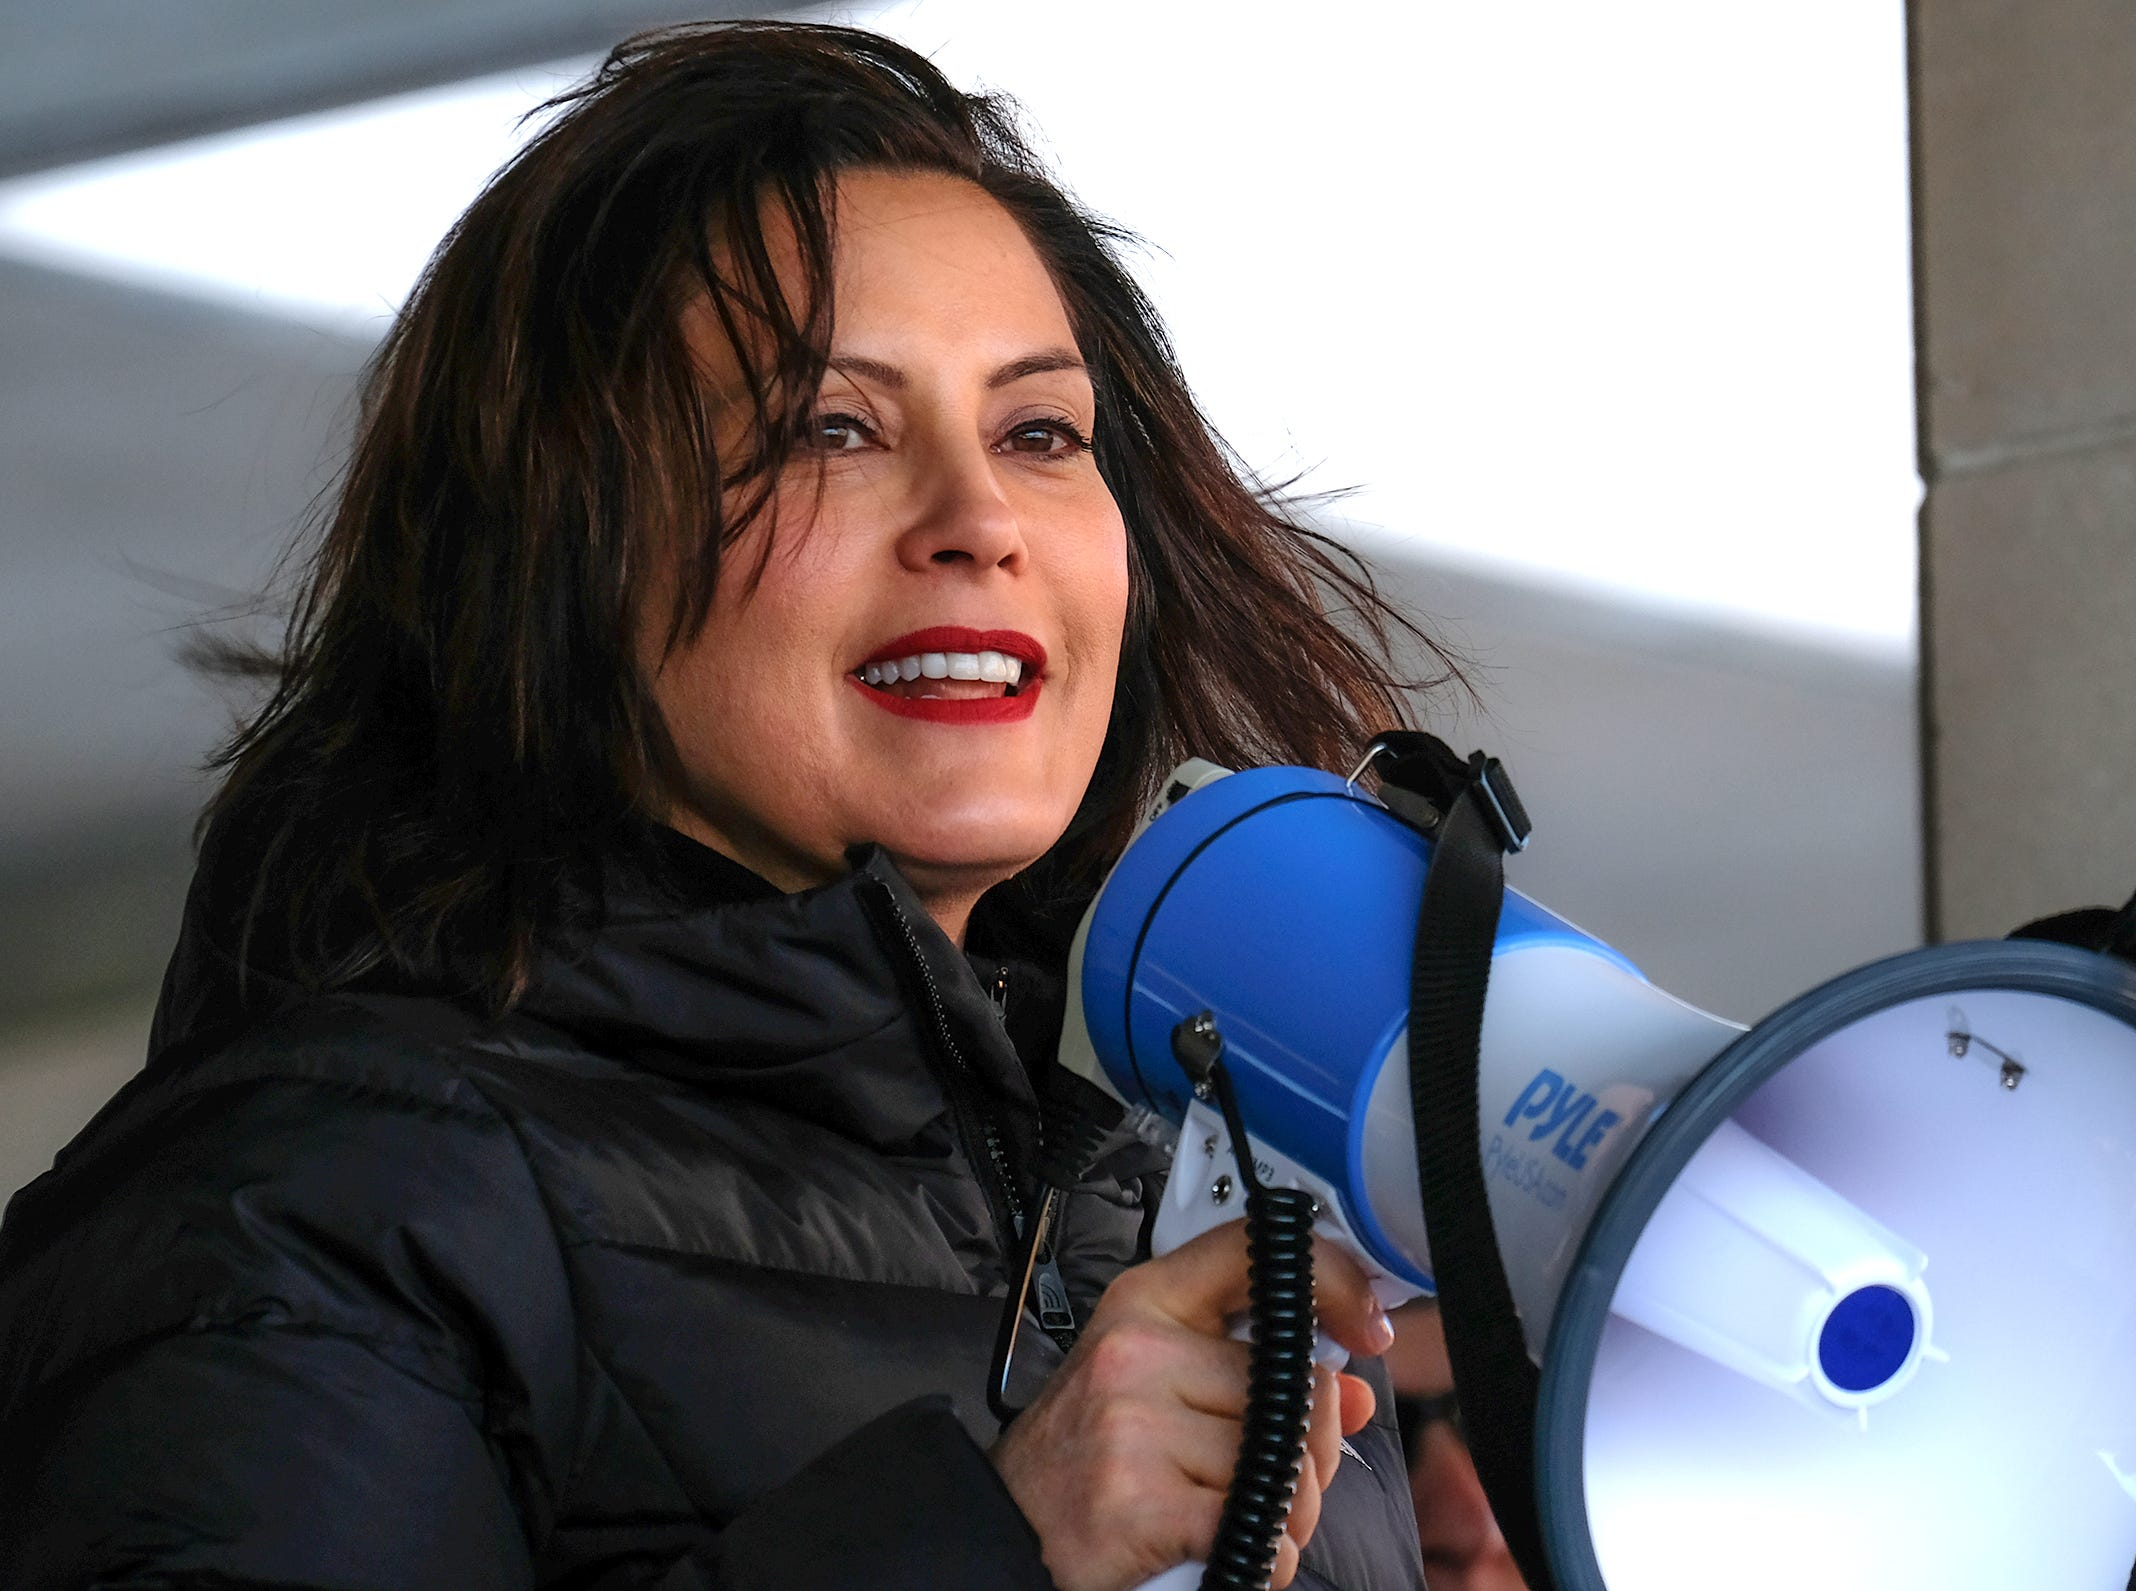 Michigan Governor Gretchen Whitmer speaks to a crowd of around 500 people who braved the frigid weather to participate in Lansing's Women's March Sunday, Jan. 20, 2019.